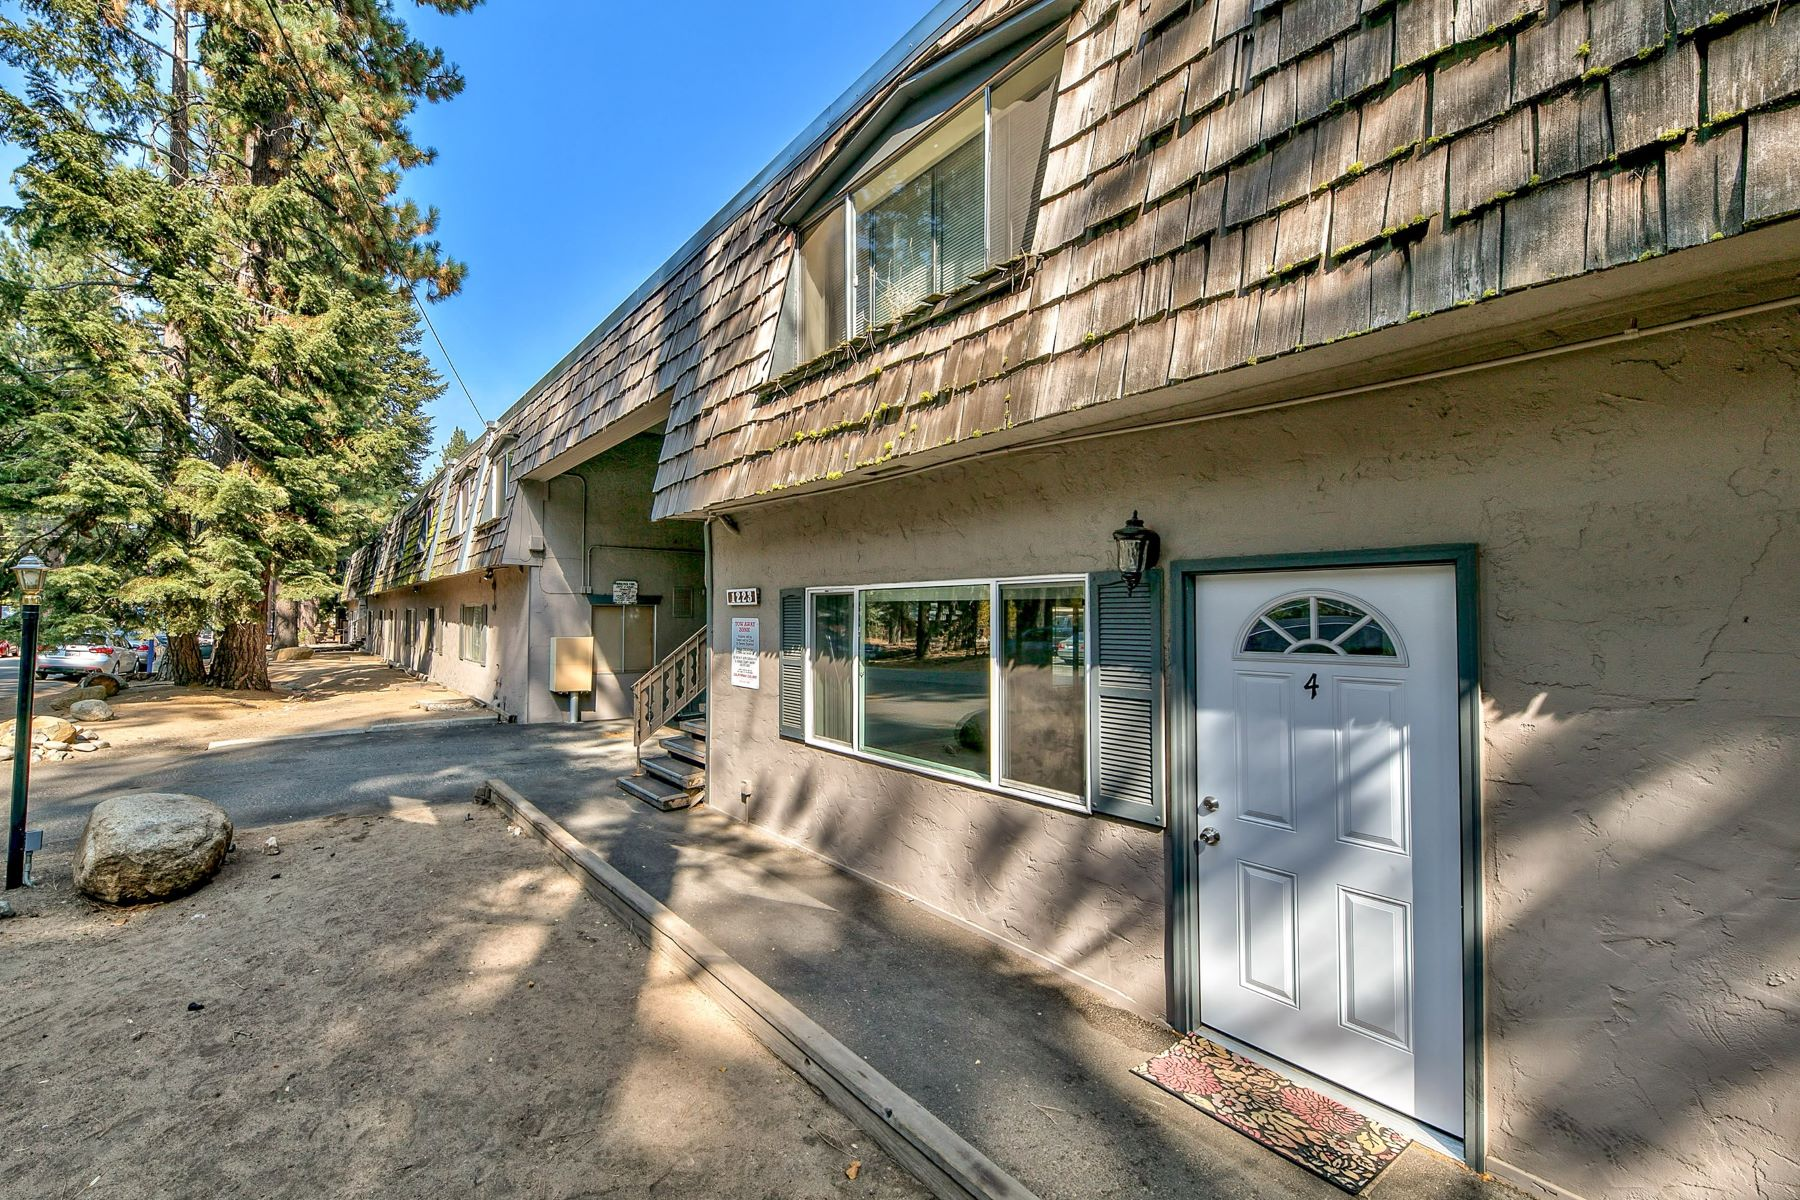 Condominiums por un Venta en $200,000 (LP) Price/SqFt: 237.81 1223 Bonanza Ave #4,South Lake Tahoe, CA 1223 Bonanza Avenue, Unit 4 South Lake Tahoe, California 96158 Estados Unidos